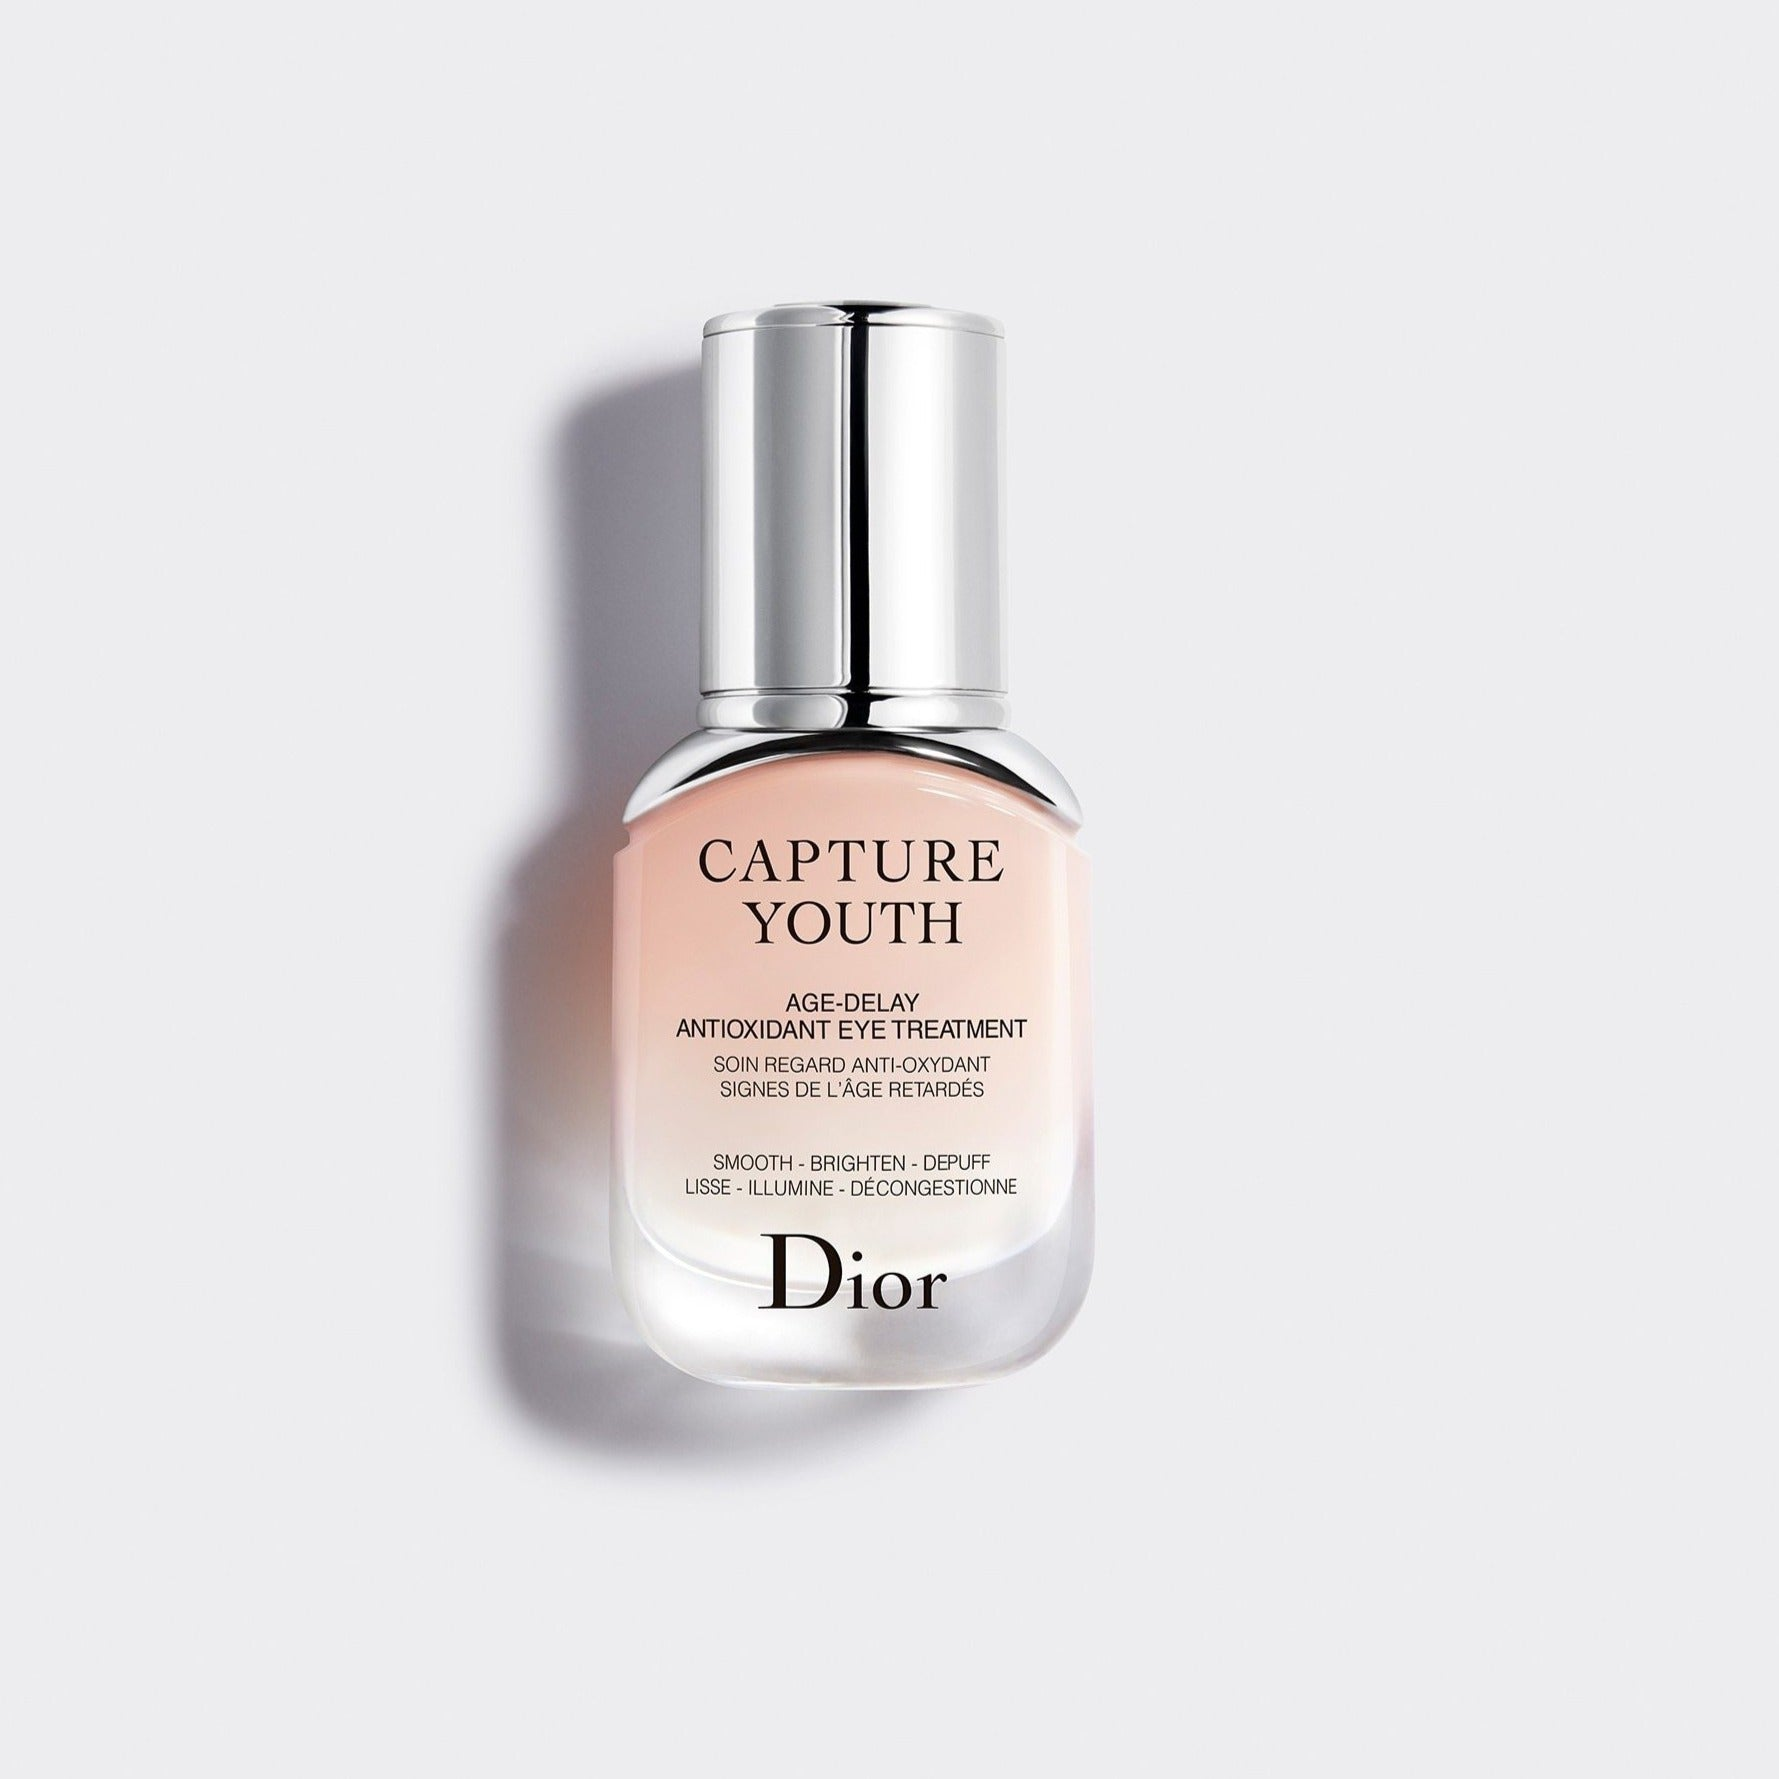 CAPTURE YOUTH | Age-delay advanced eye treatment